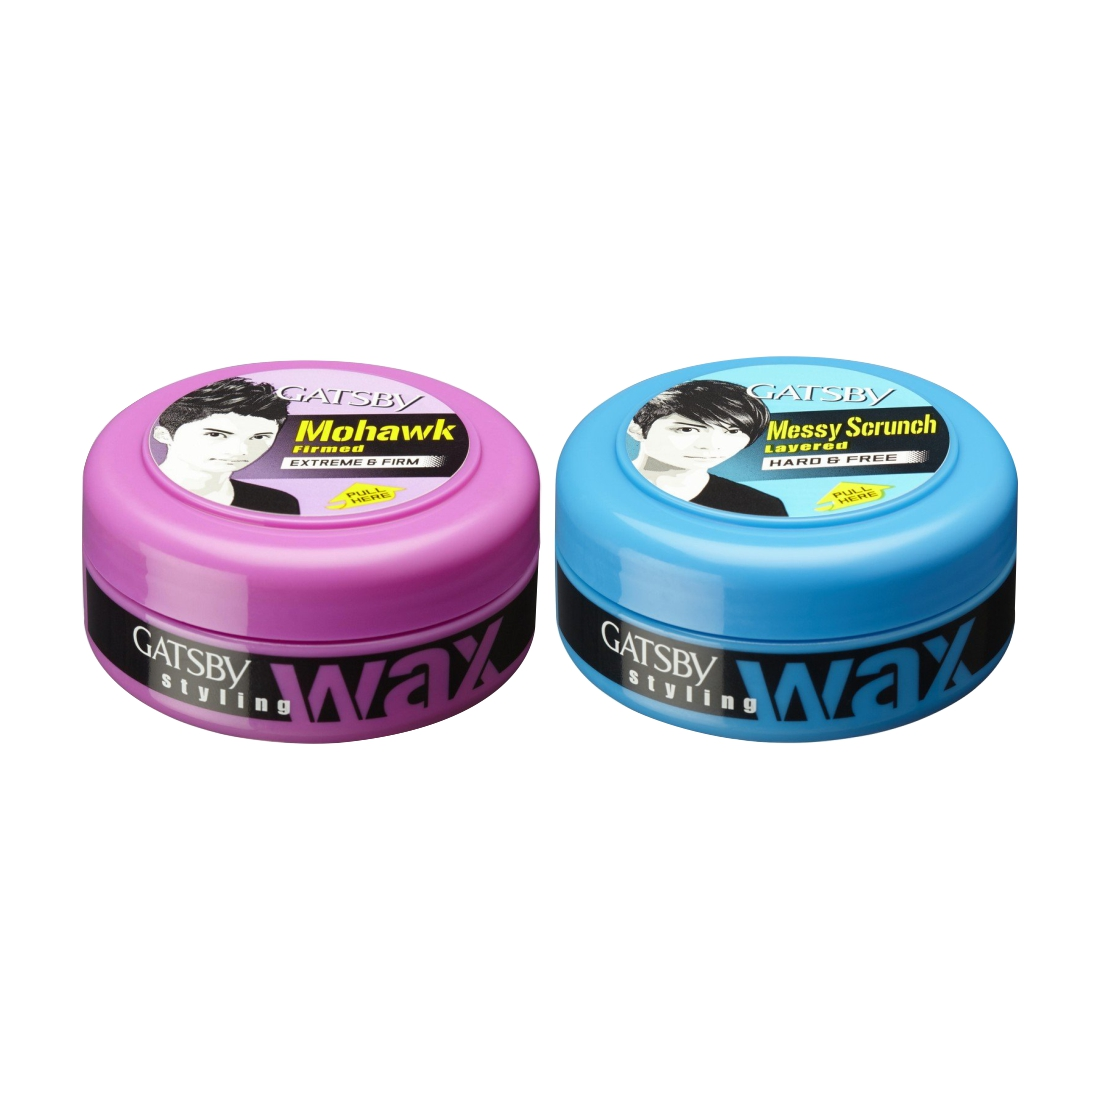 Gatsby Extreme N Firm And Extreem N Hard Free Wax Pack Of 2